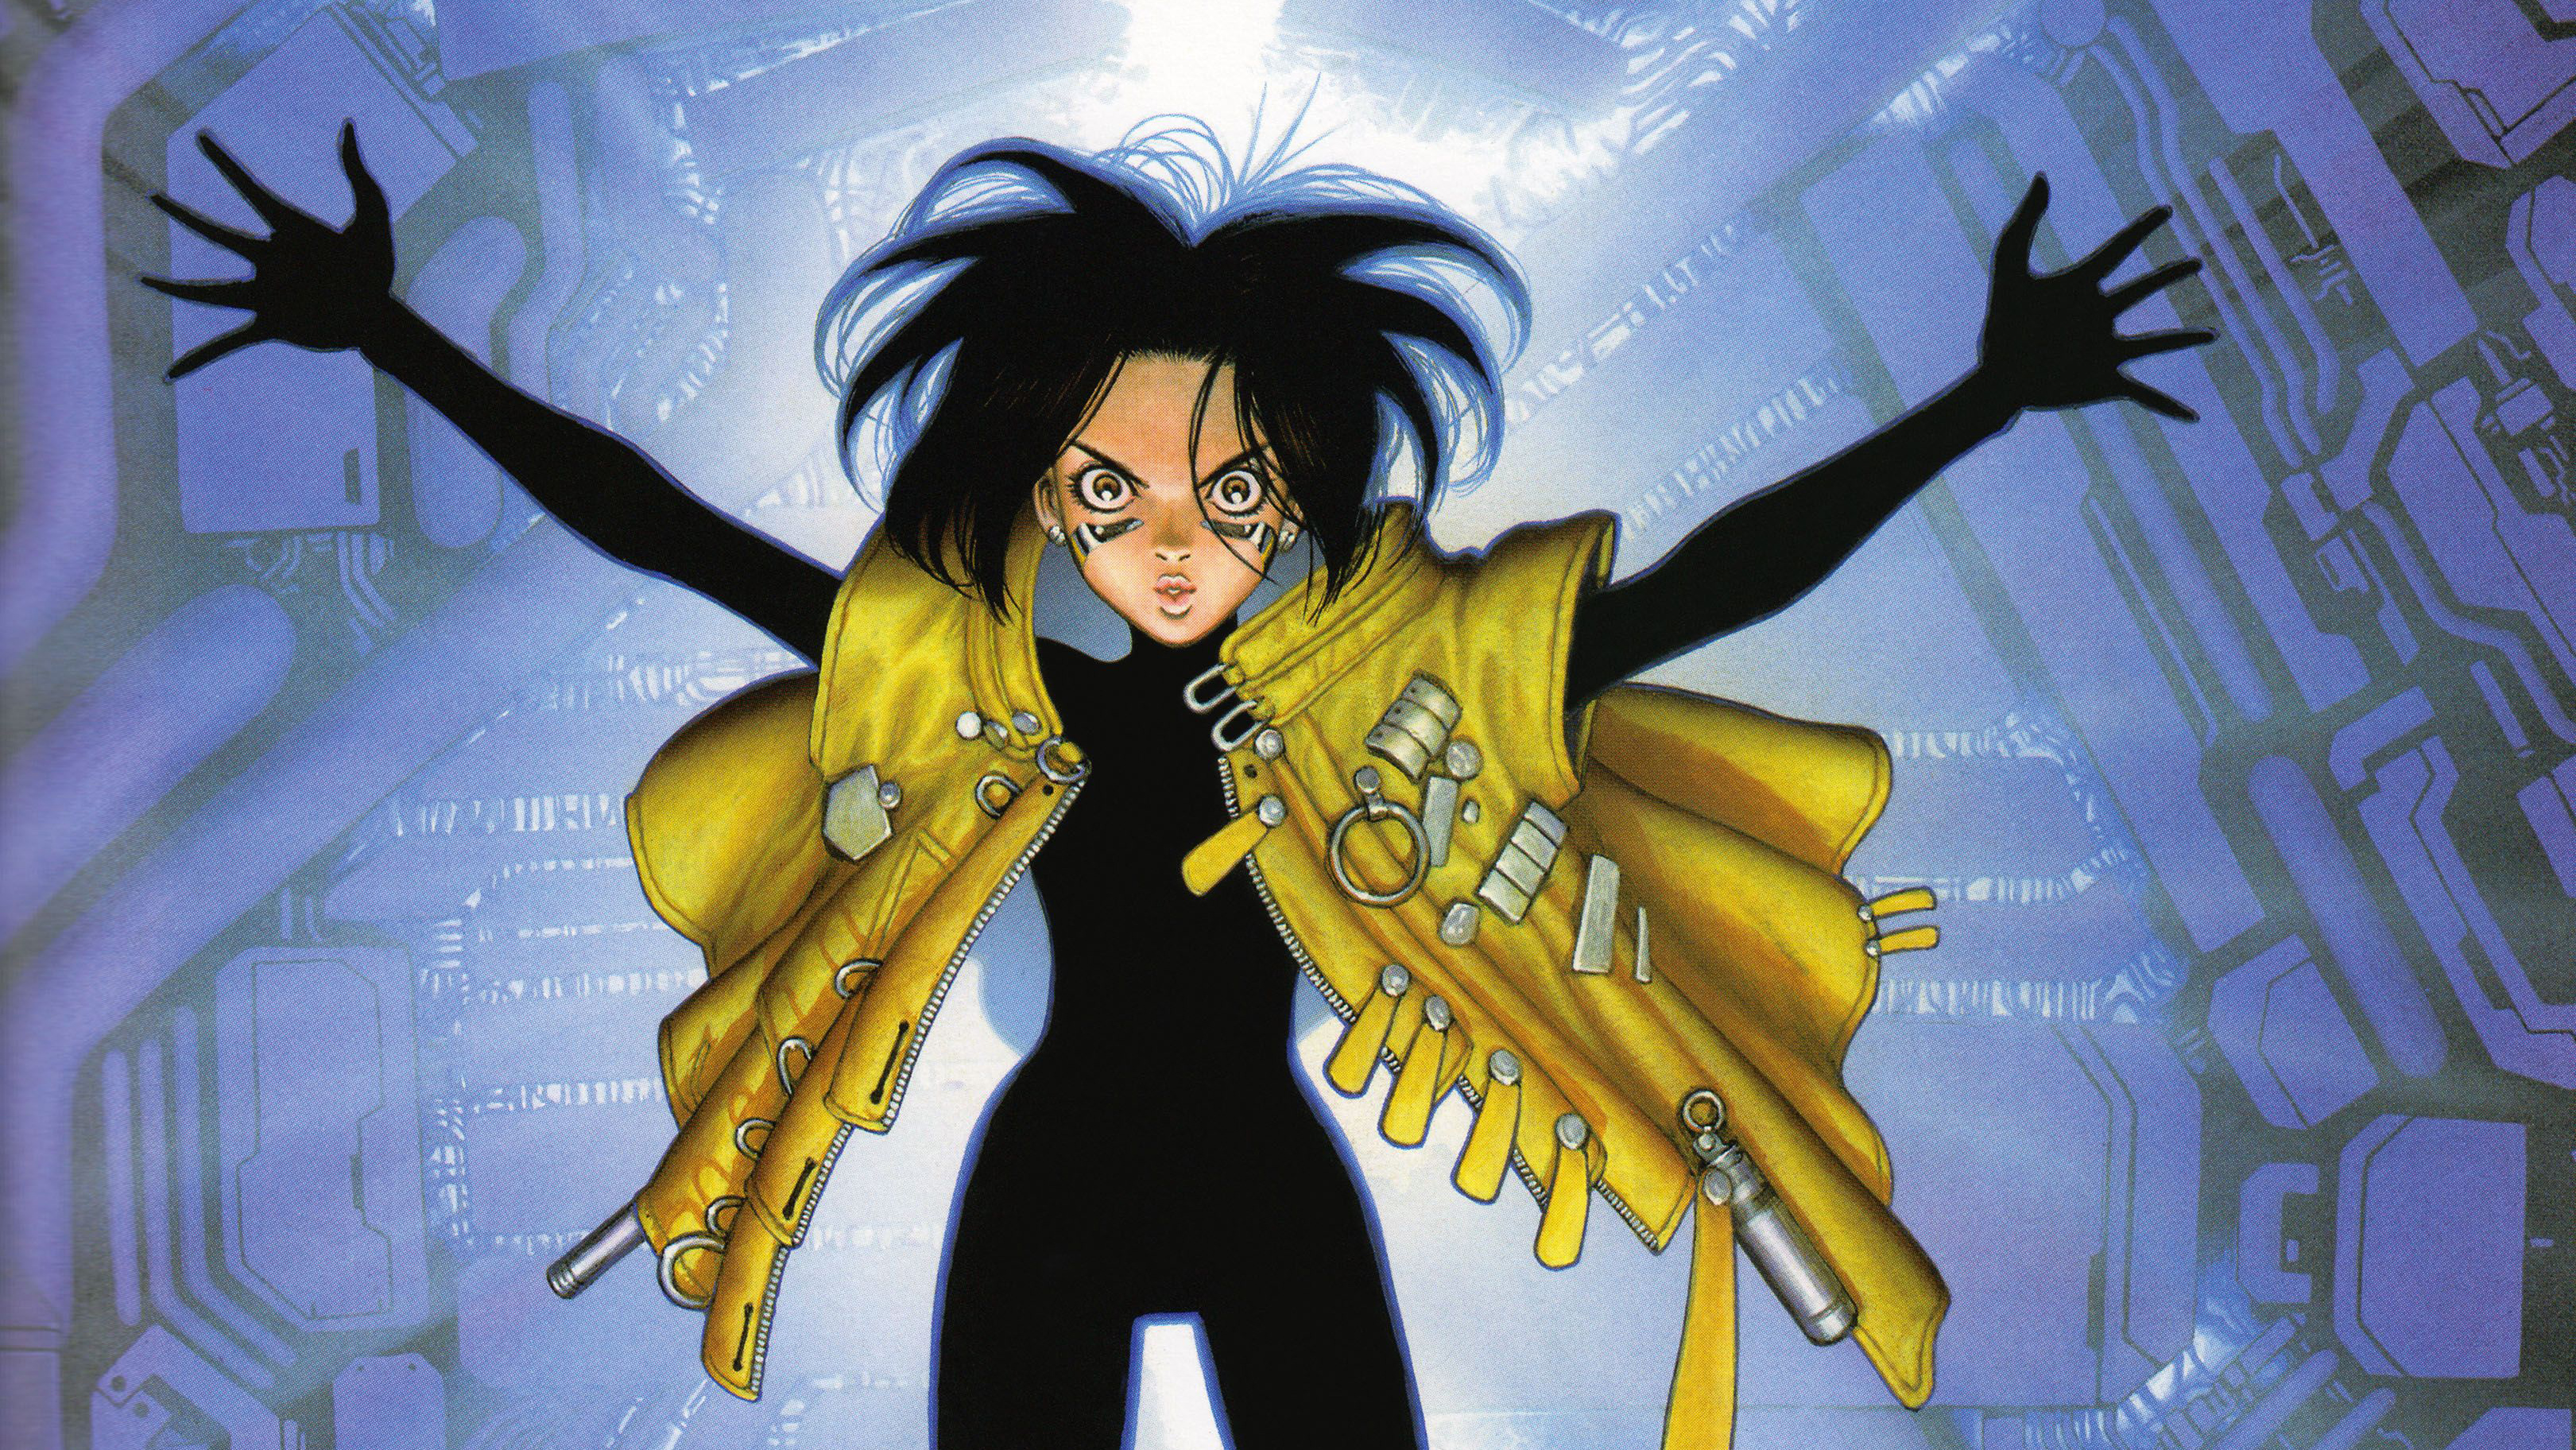 Alita Battle Angel Anime 4k Hd Anime 4k Wallpapers Images